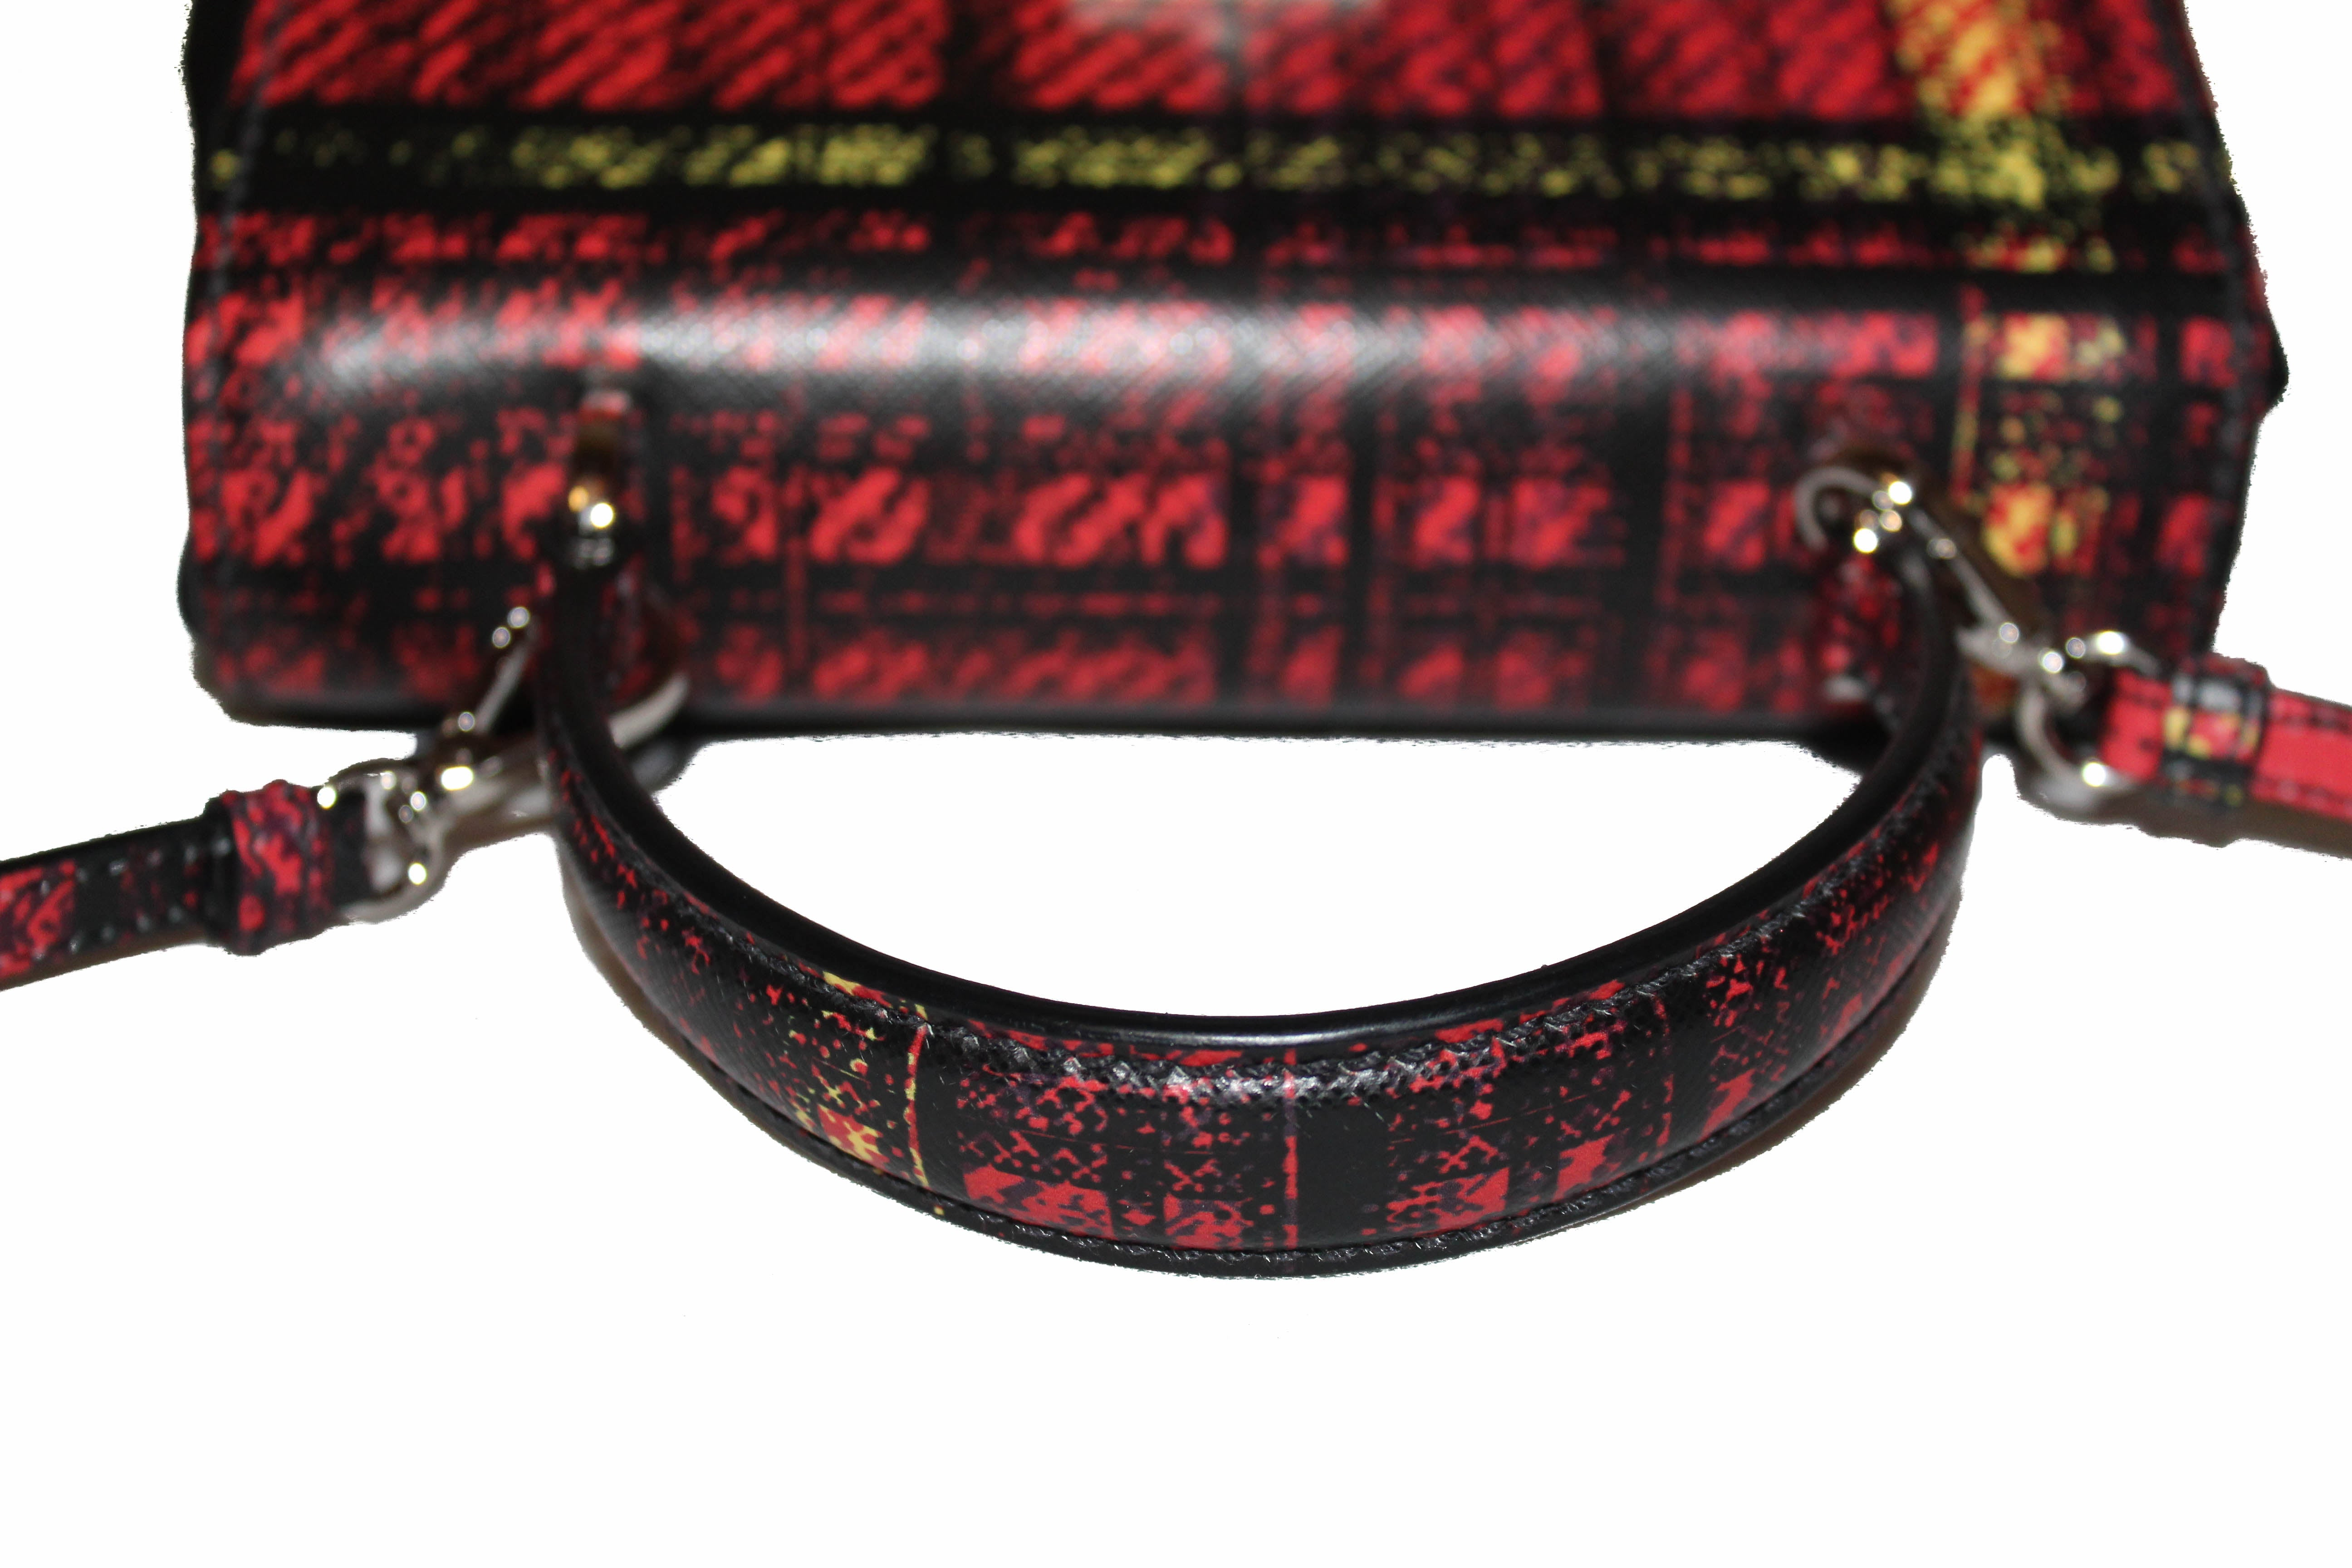 Authentic New Prada Red Plaid Tartan Saffiano Leather and Nylon Top Handle Messenger Bag with Long Strap